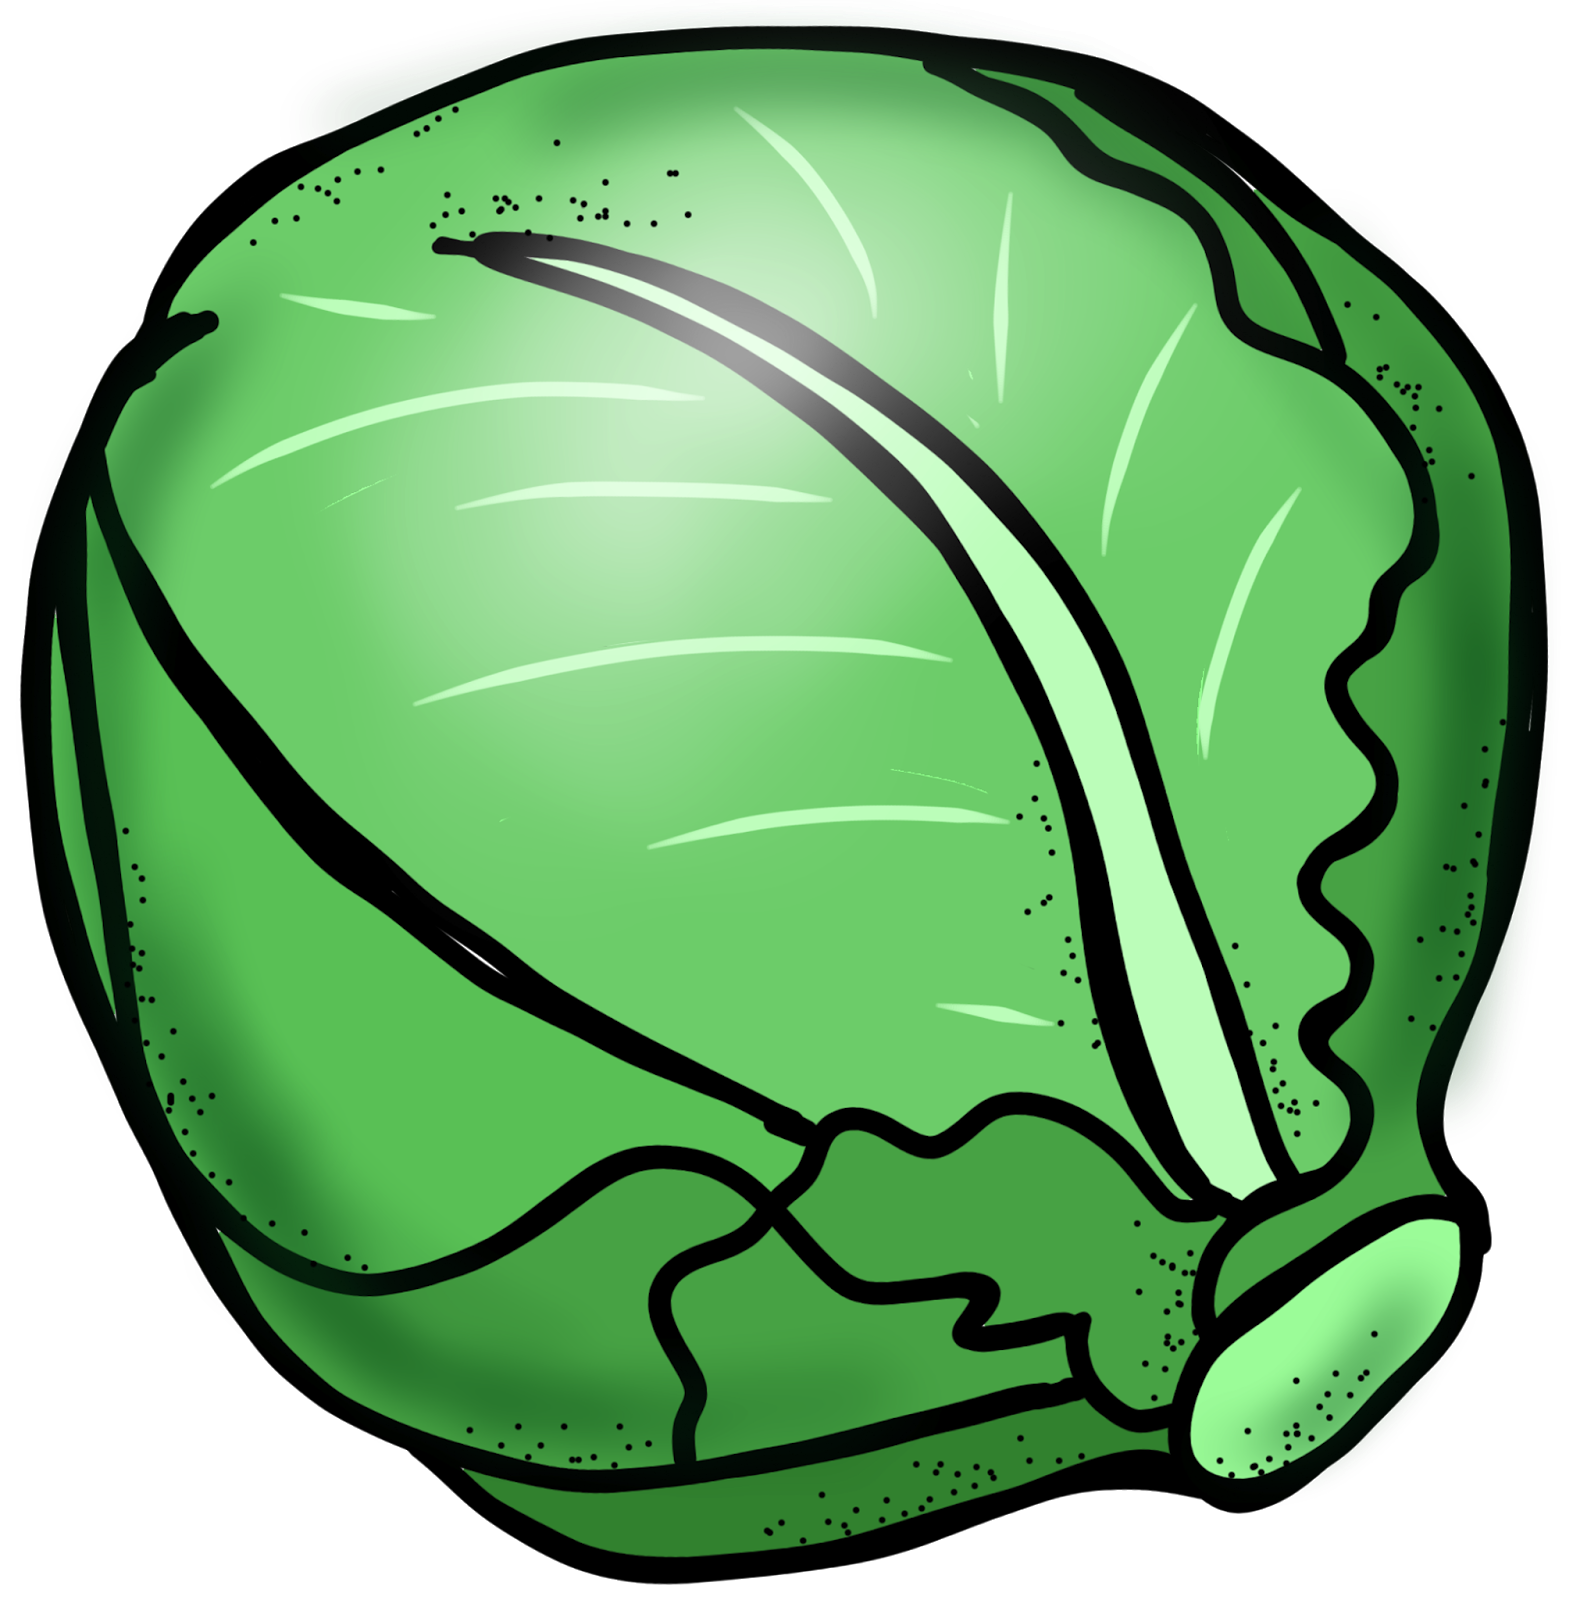 Cabbage Clipart - Clipart Suggest